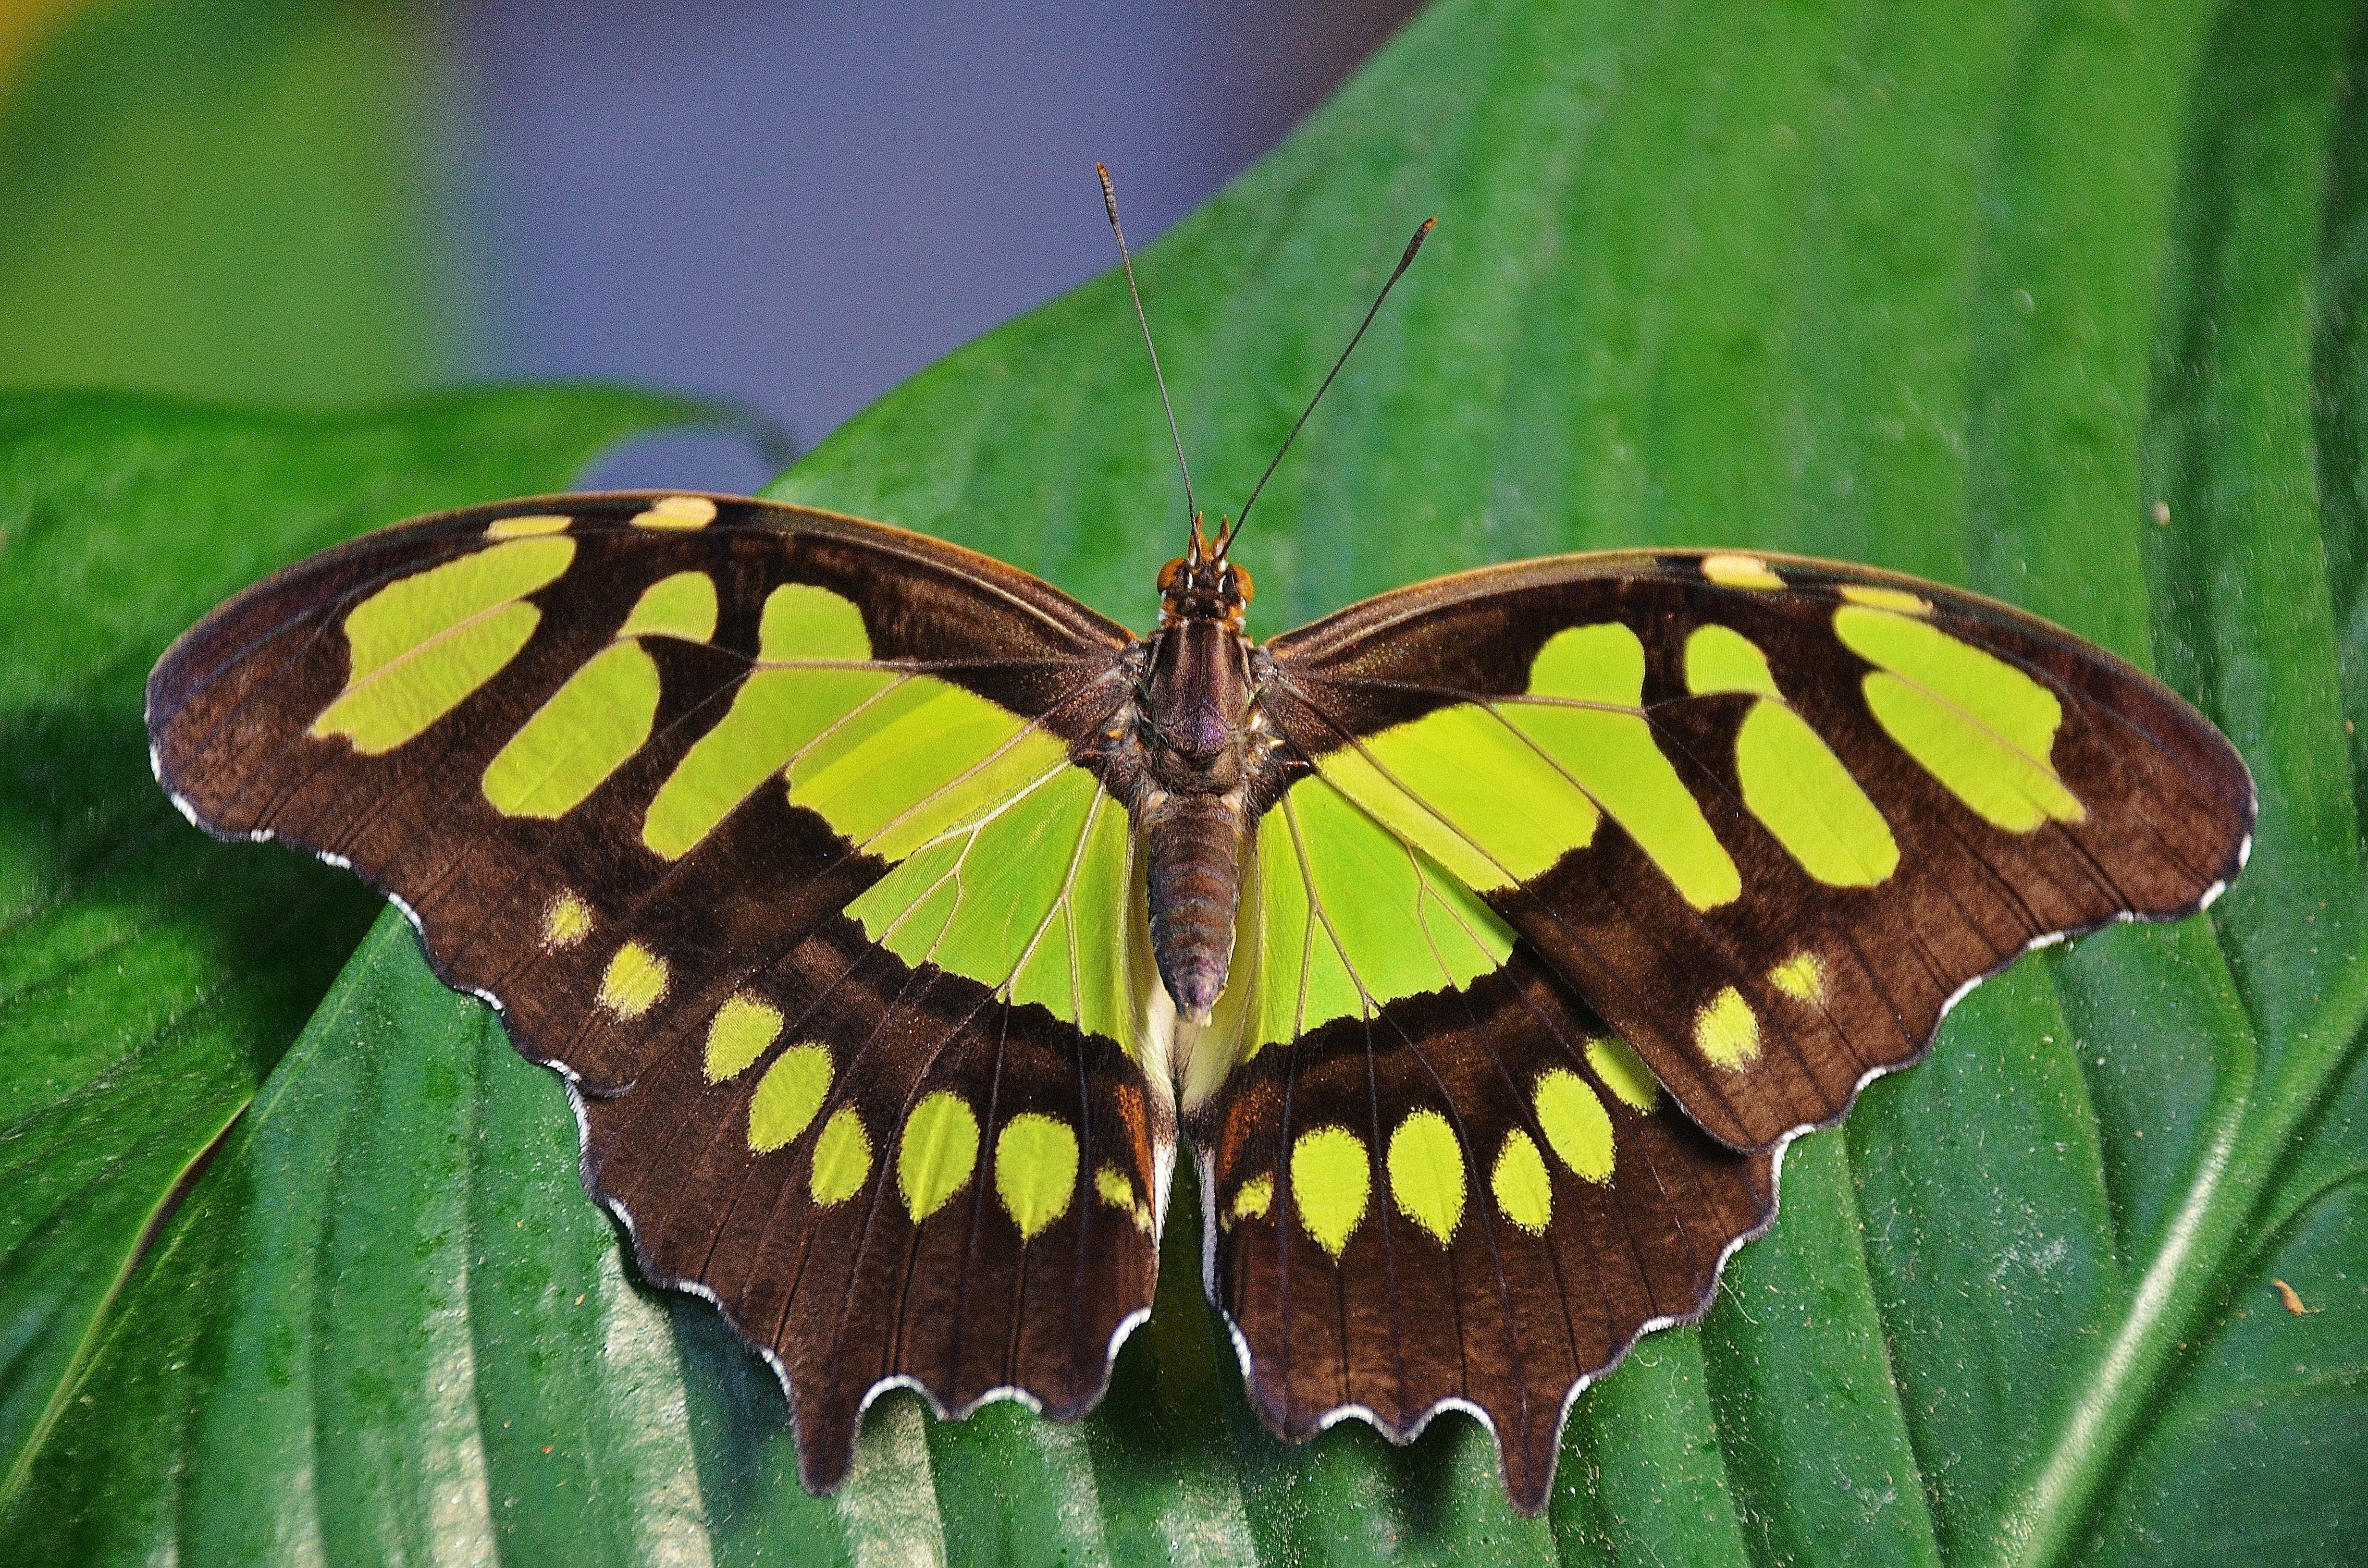 Closeup Photography of Brown and Yellow Butterfly Perching on Green Leaf